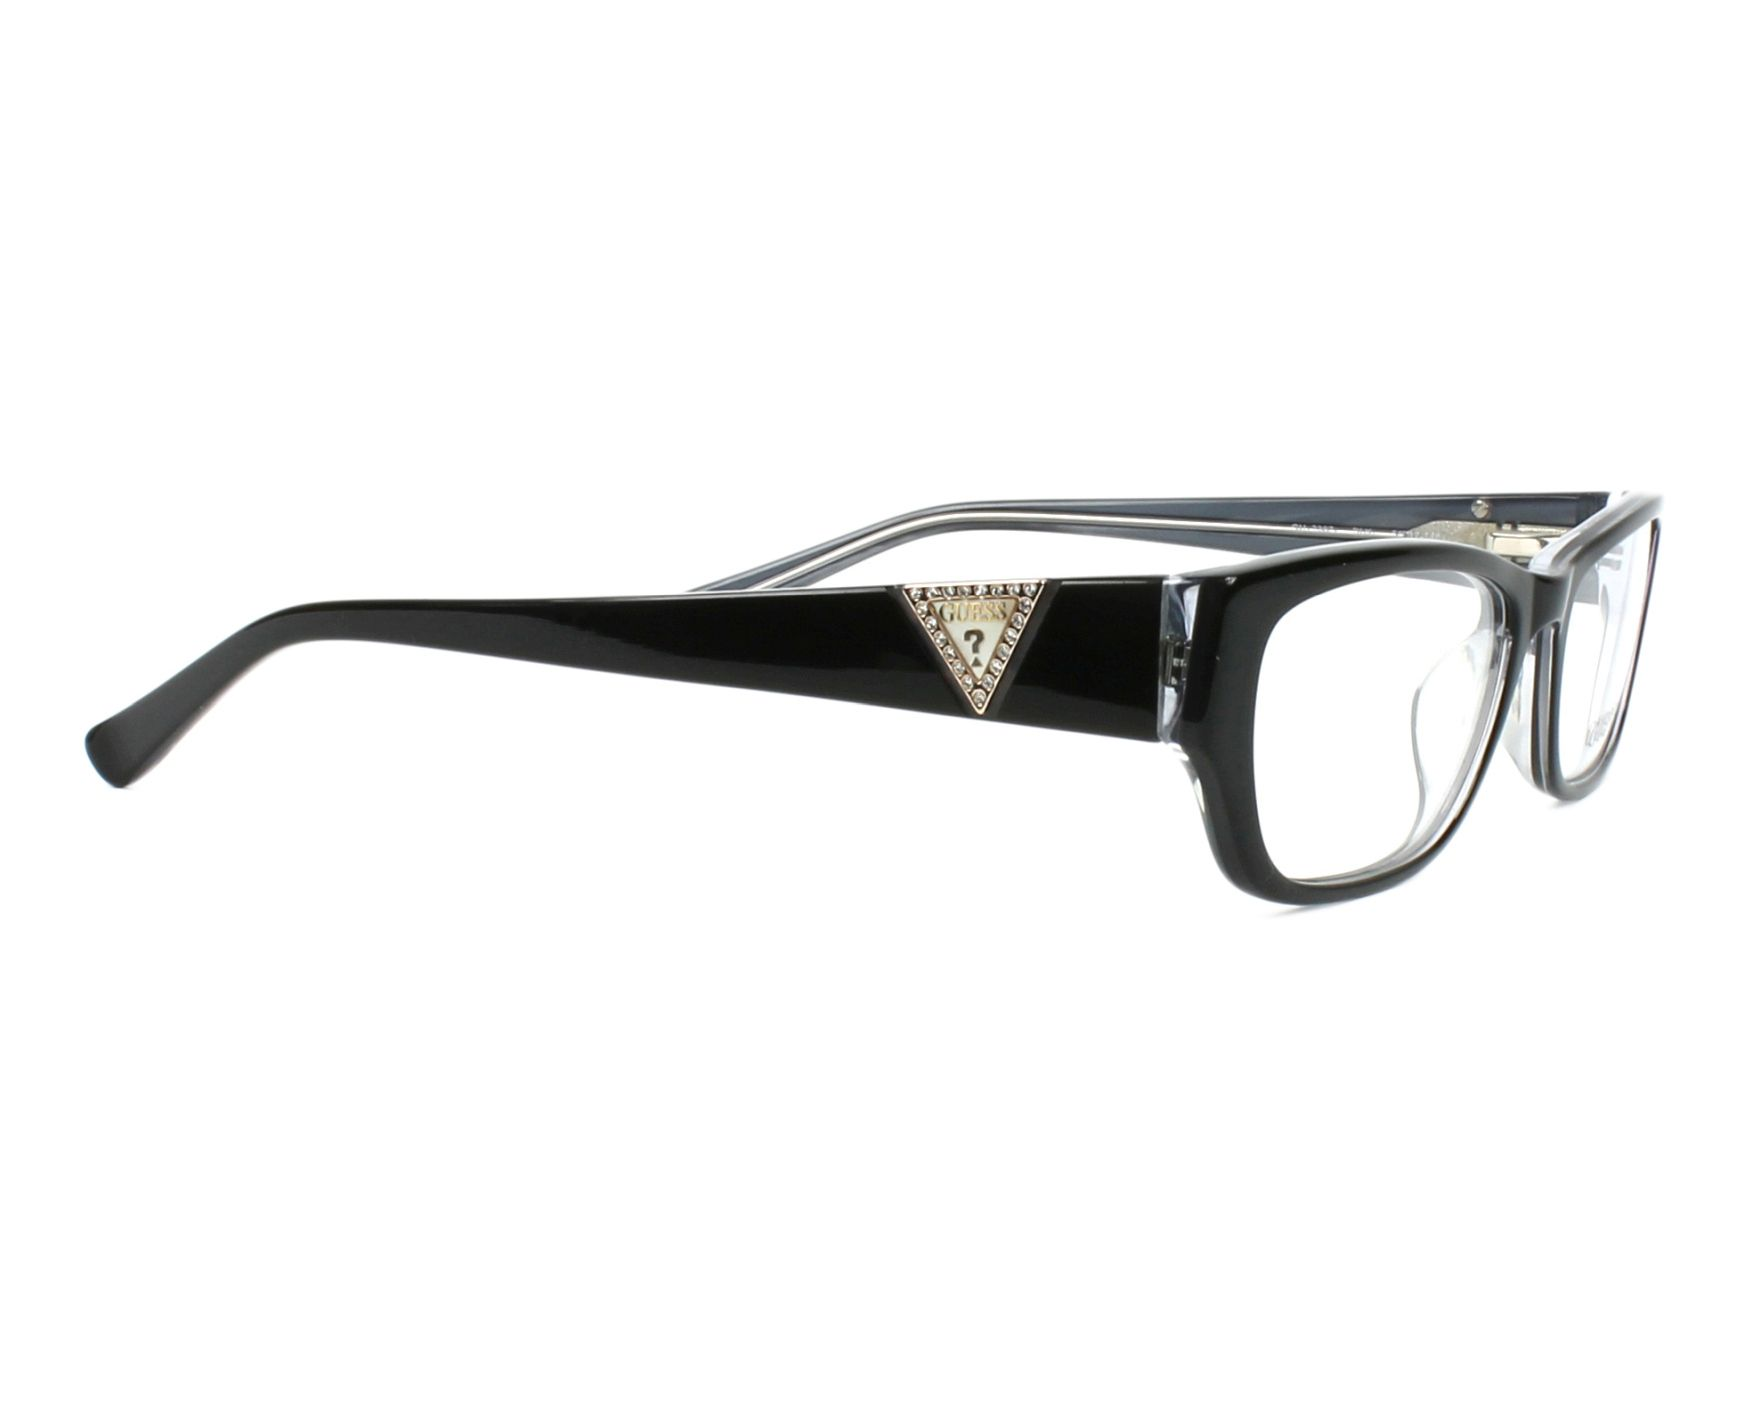 eyeglasses Guess GU-2387 BLK 54-17 Black Crystal side view